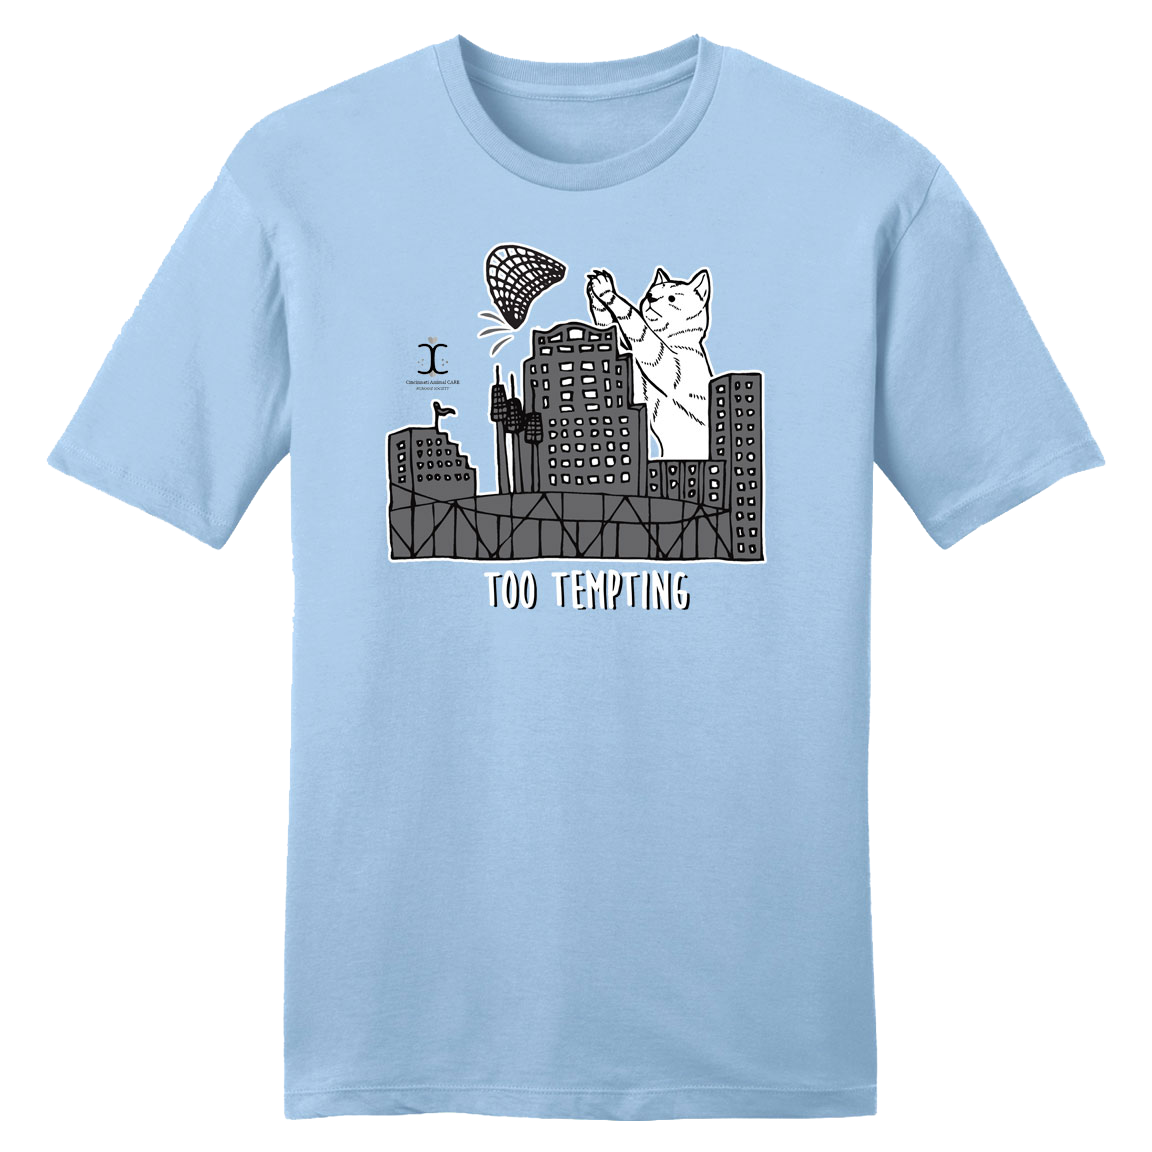 Too Tempting - CARE - Cincy Shirts